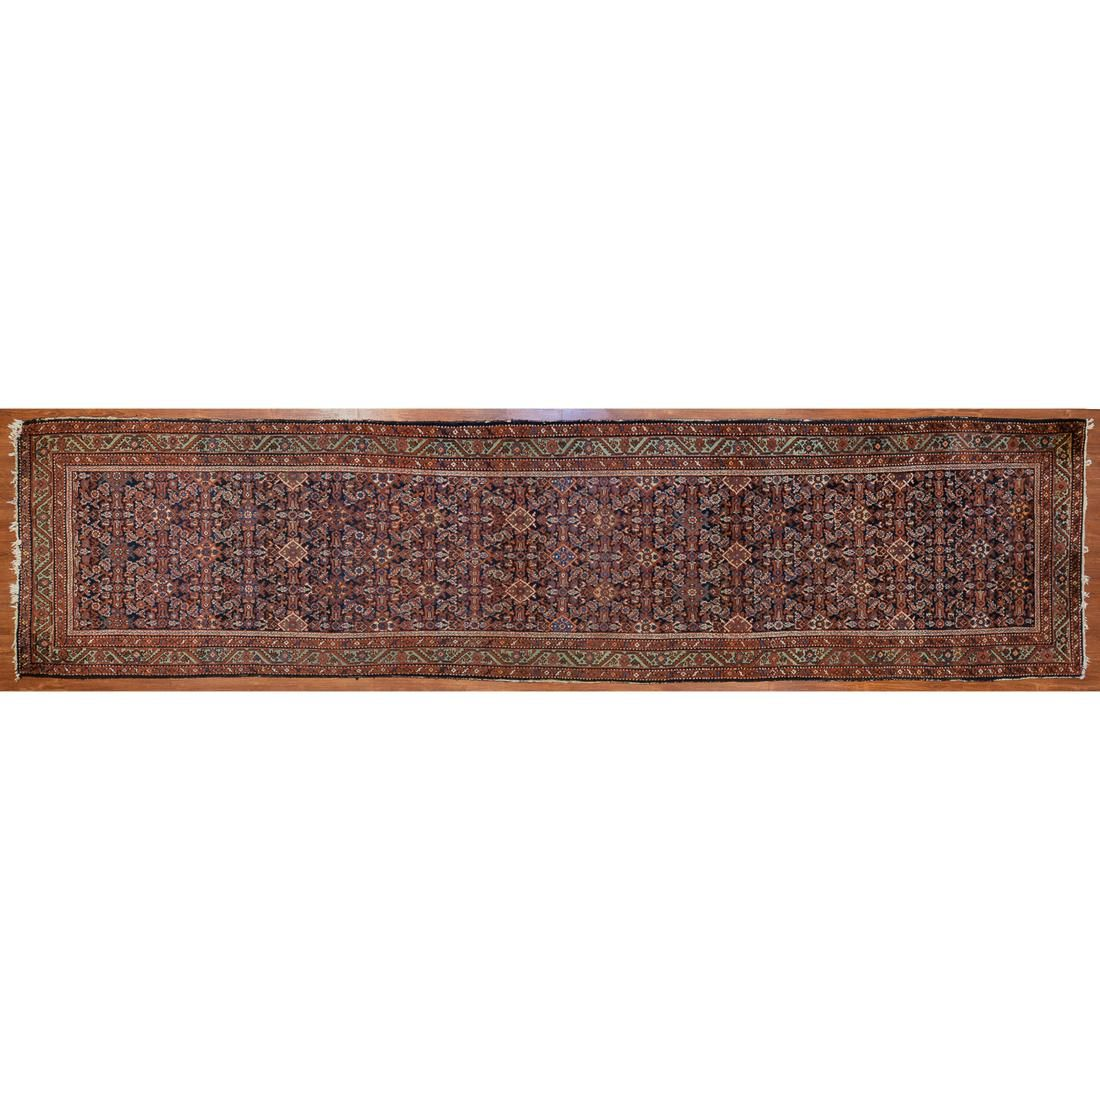 Semi-Antique Hamadan Runner, Persia, 3.8 x 16.2